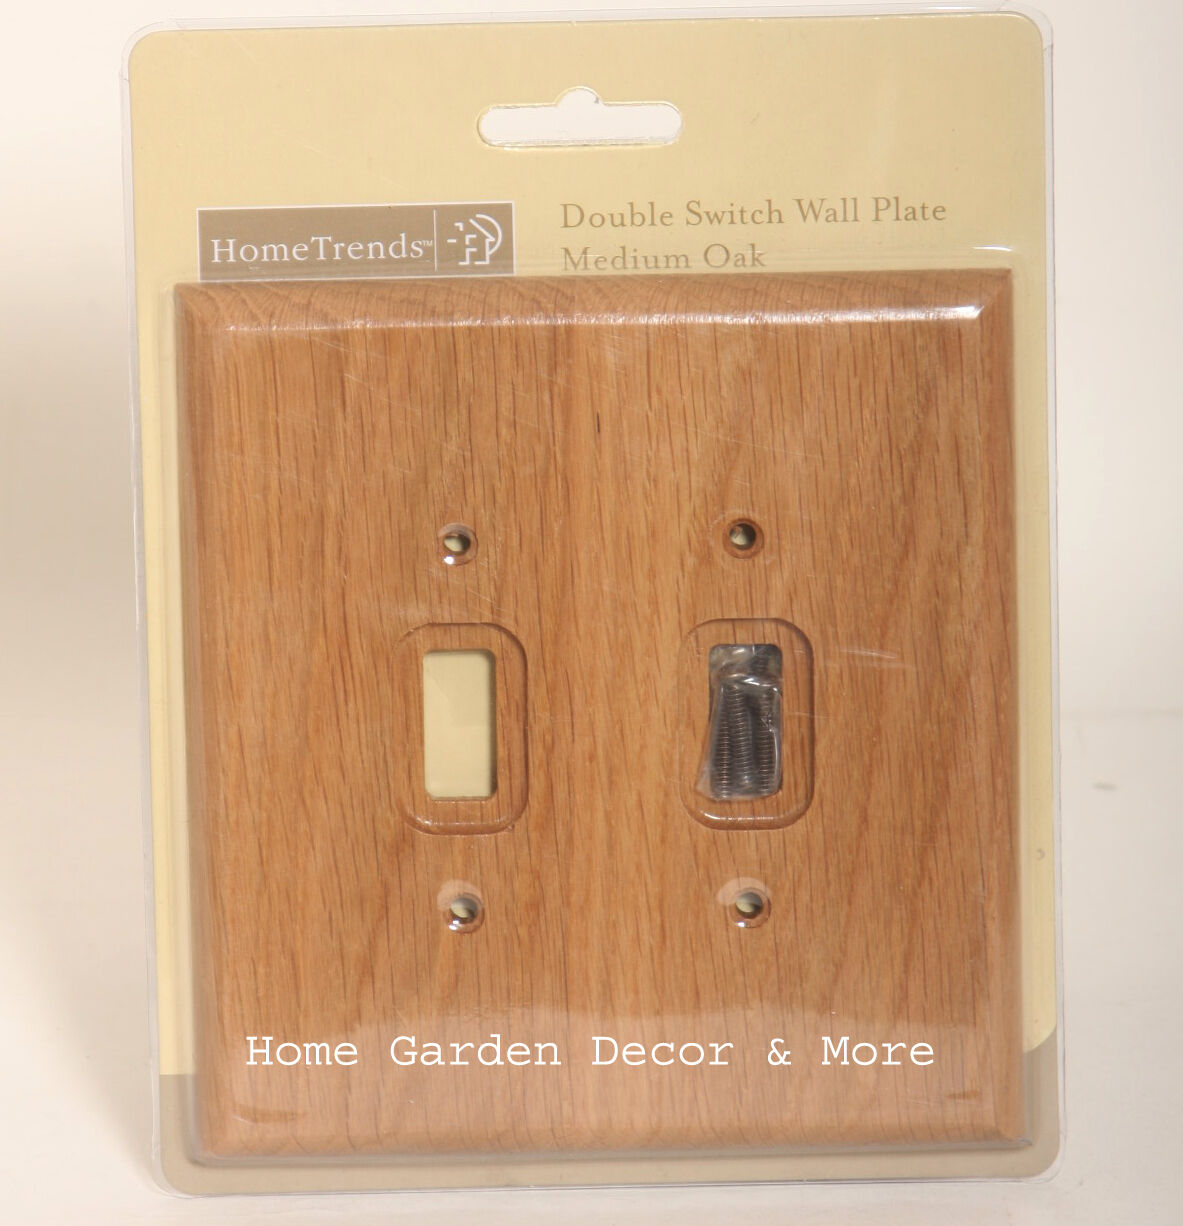 5 Switch Outlet Cover Home Trends Wooden Double Switch Wall Plate Outlet Cover  Medium